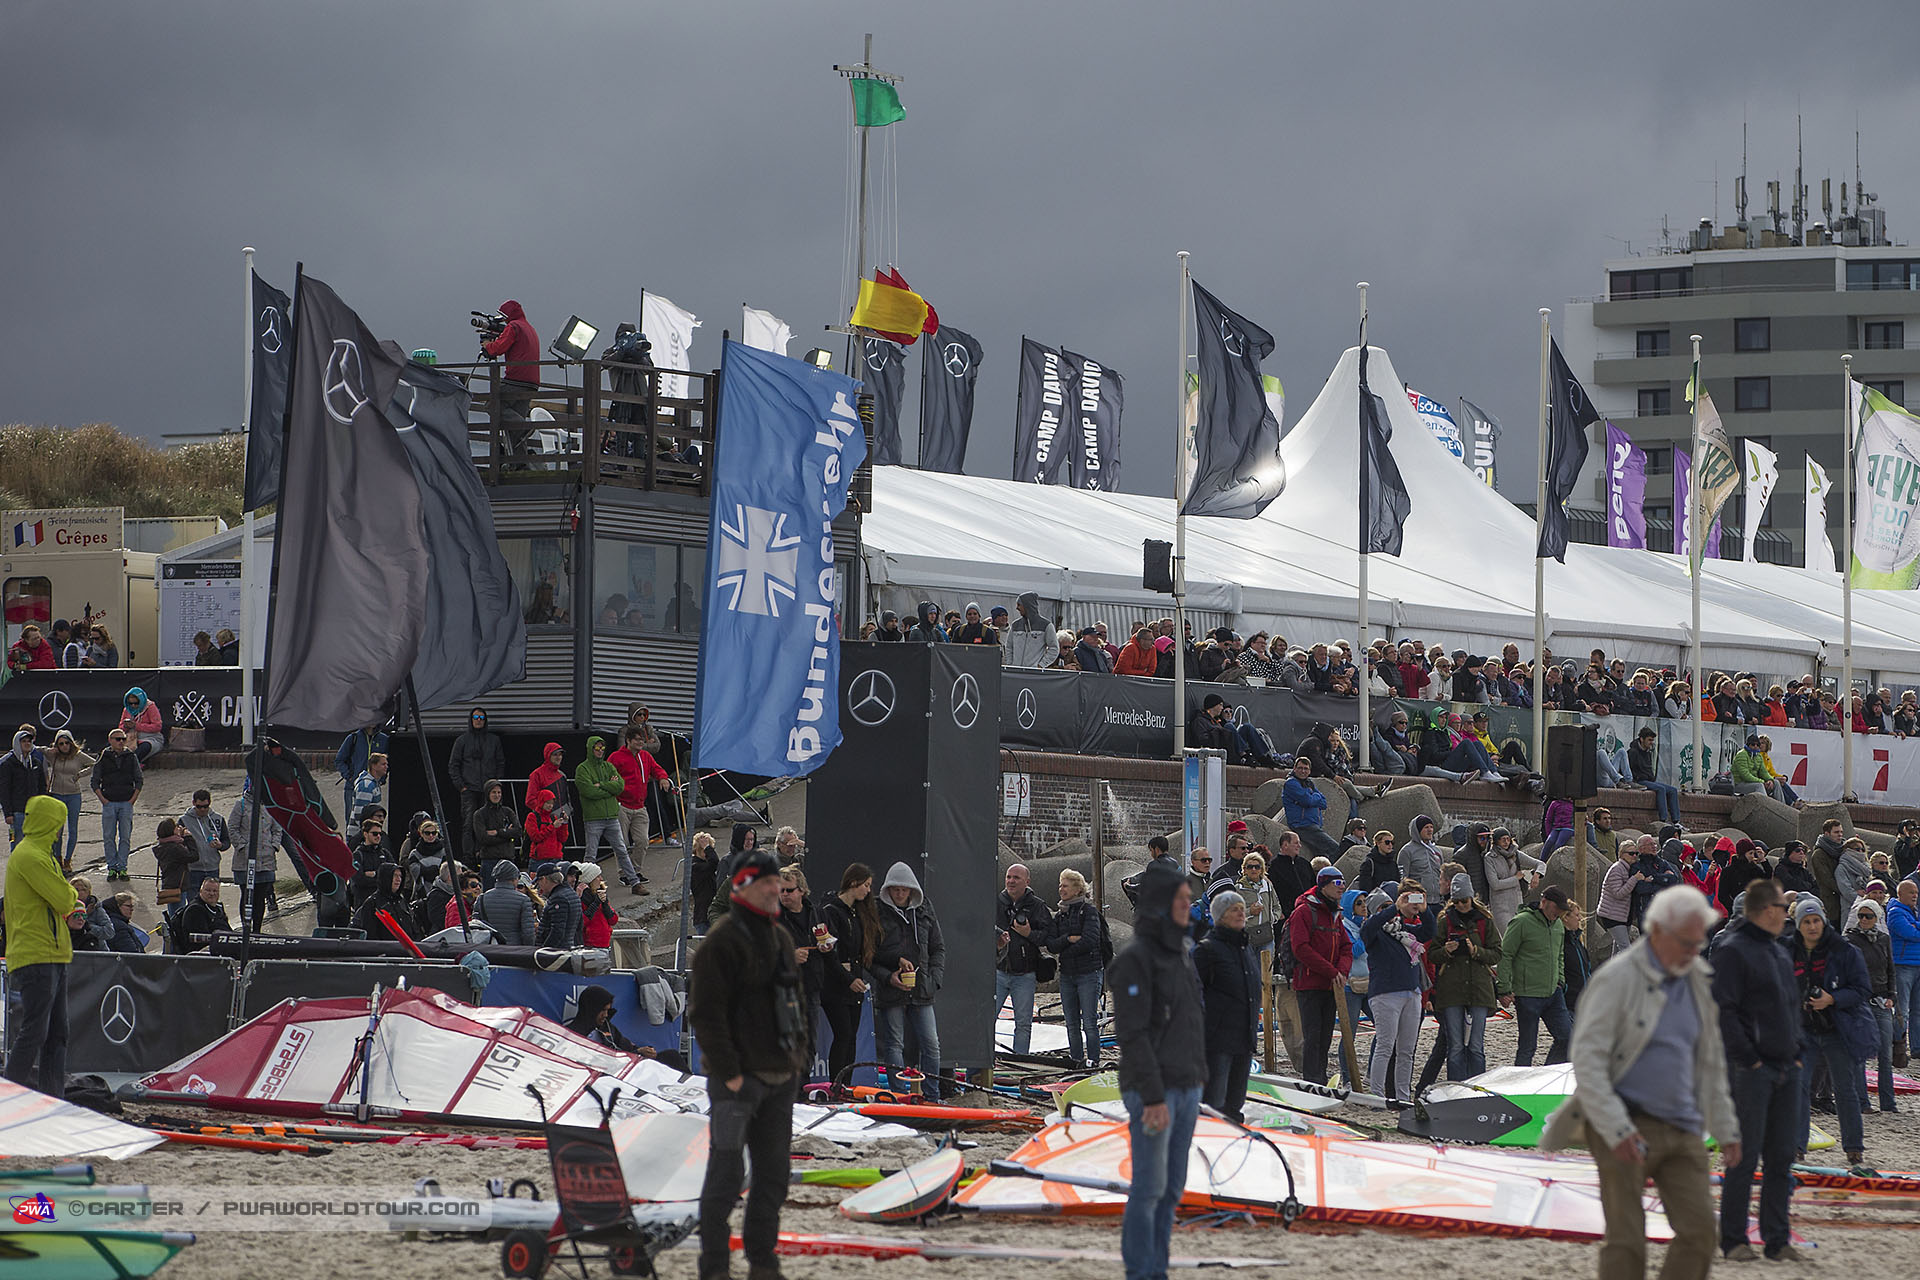 Spectators watch the action as the green flag goes up for a freestyle heat at the PWA Sylt Windsurf World Cup